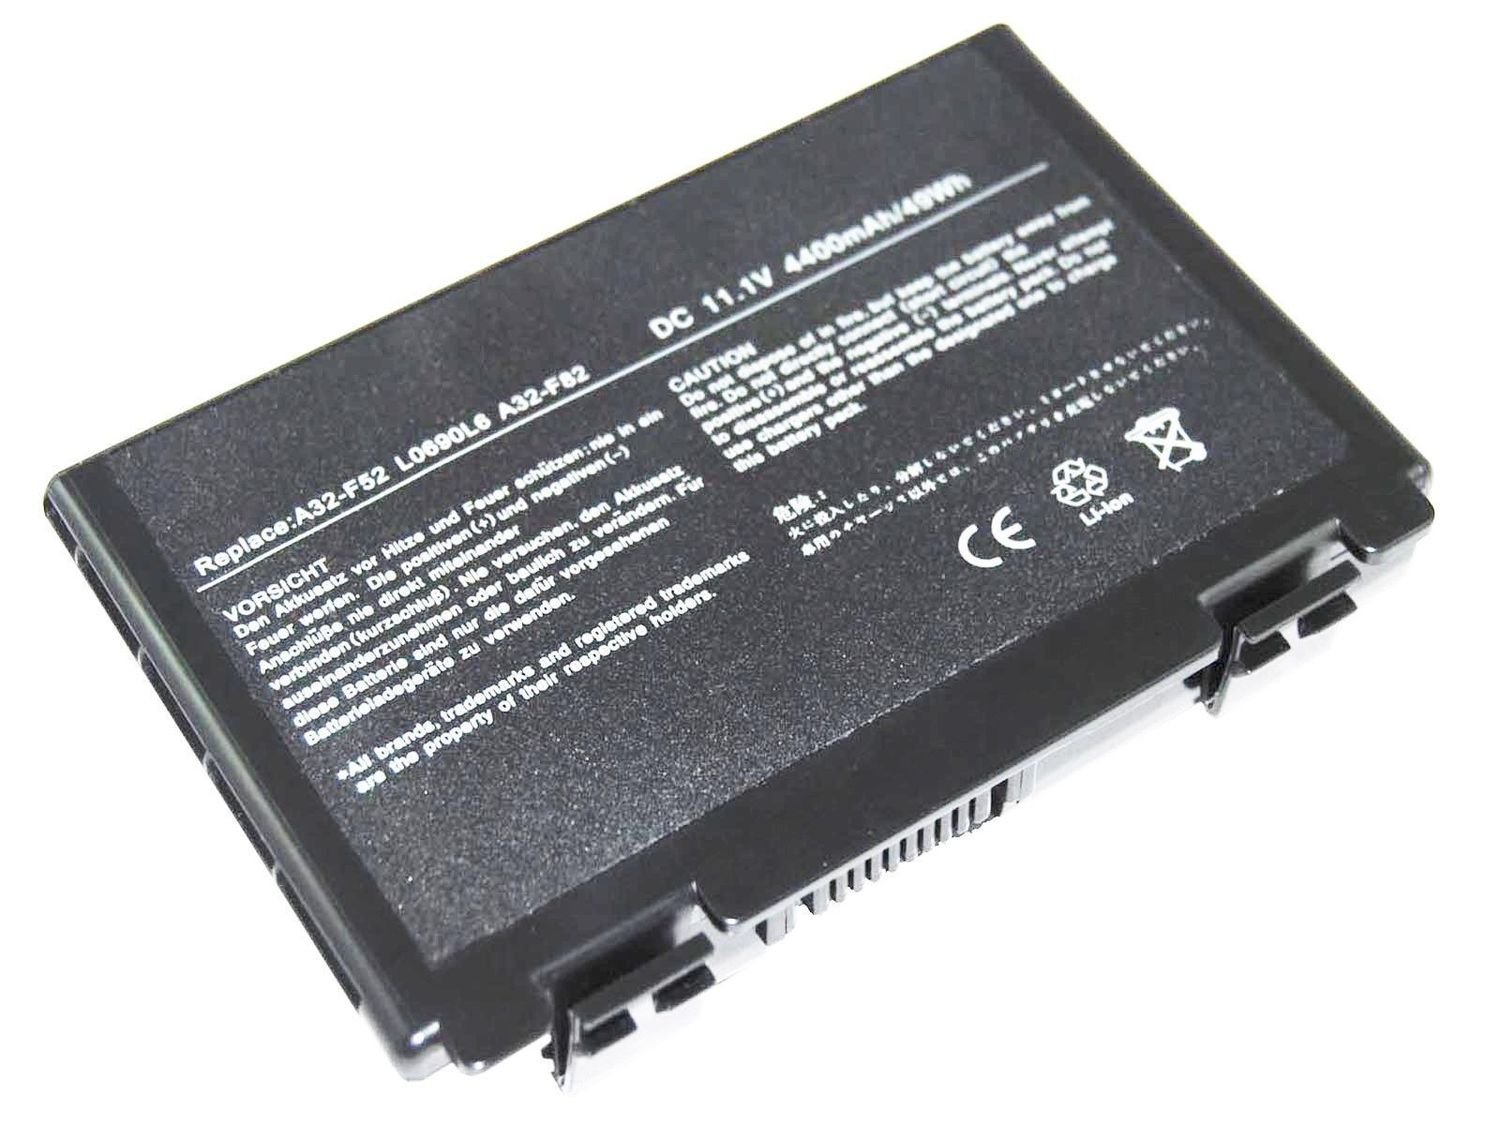 Asus A32-F52 A32-F82 A32-K40 series compatible laptop battery